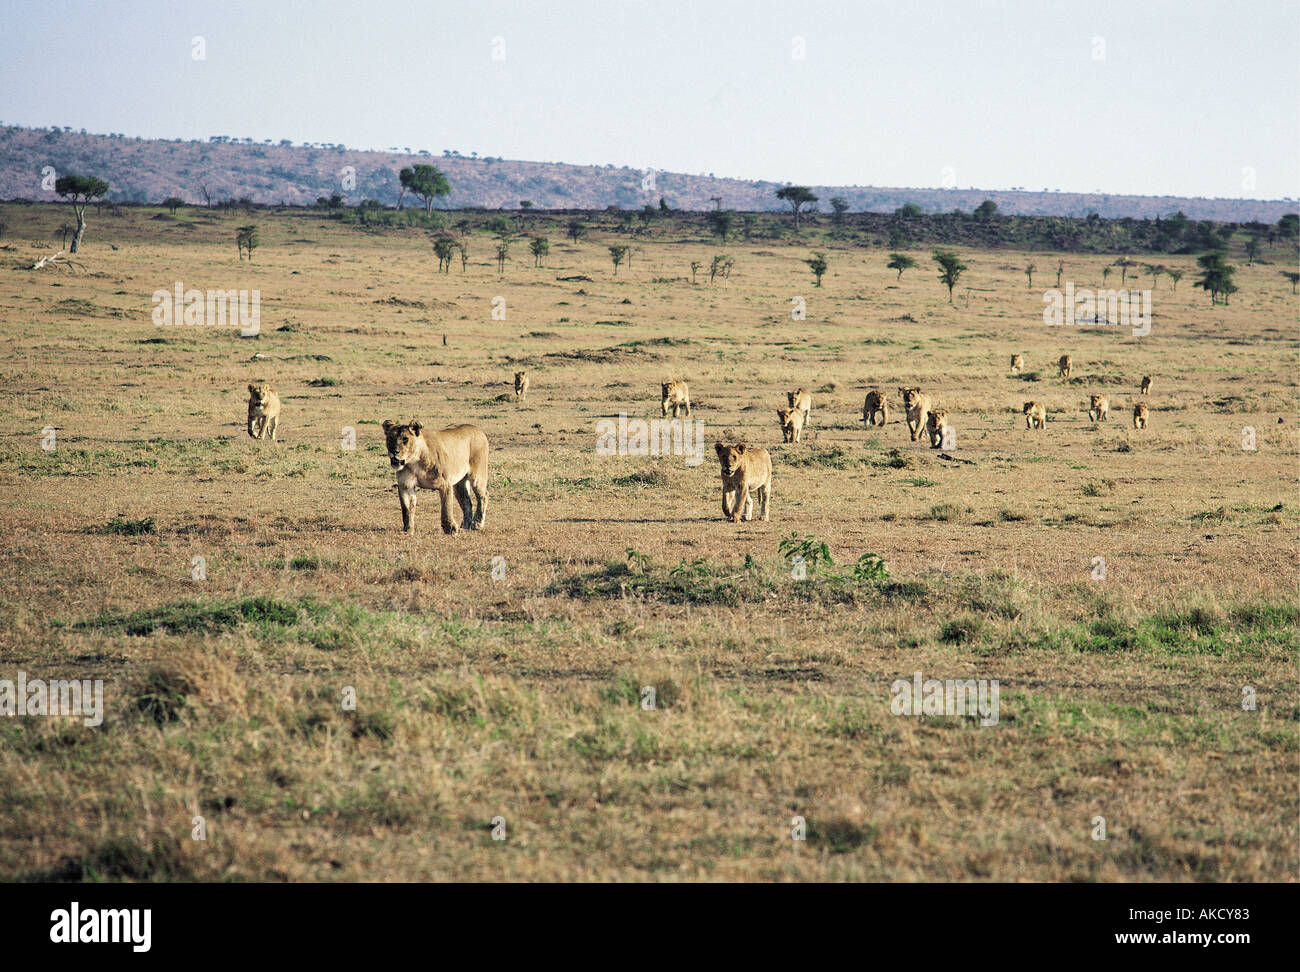 Sixteen lionesses and cubs moving across open grass plains Masai Mara National Reserve Kenya East Africa - Stock Image